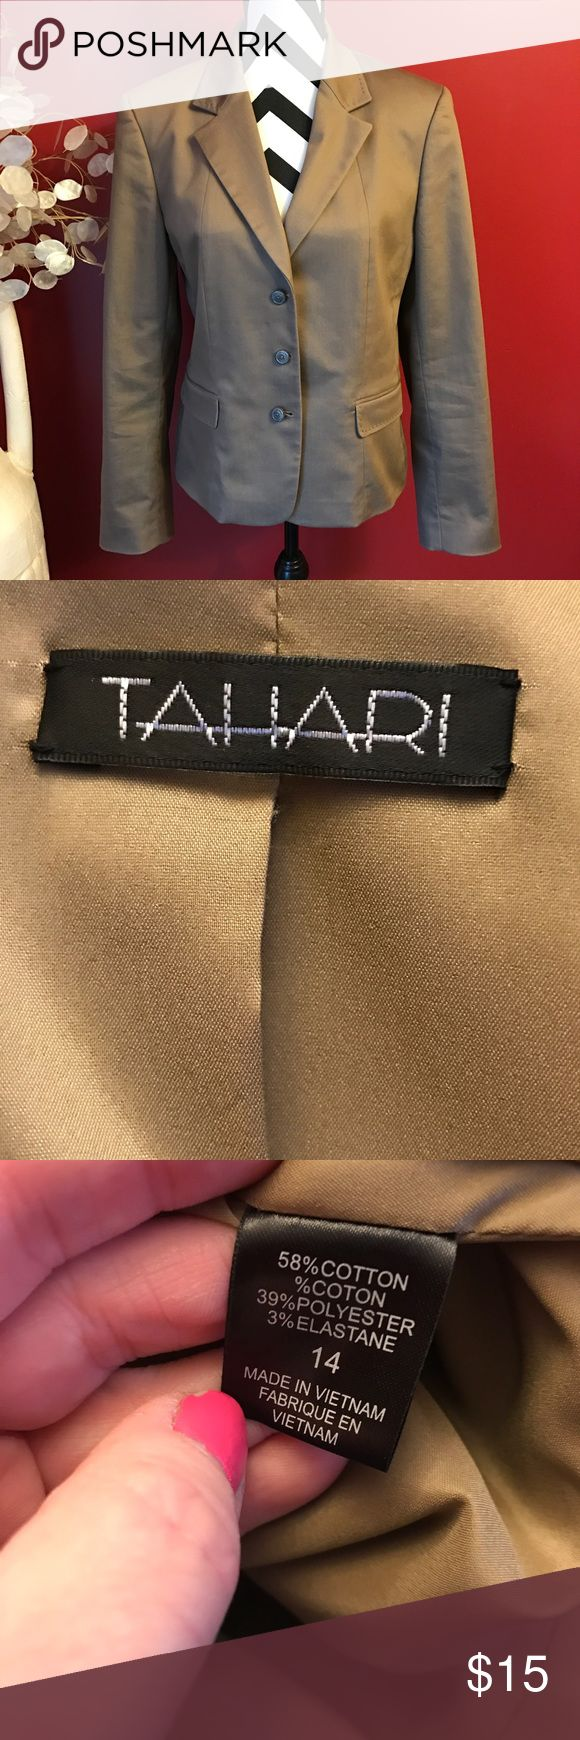 Tahari kaki blazer Worn once in excellent condition no flaws just got back from dry cleaners. Underarm measurements are 19' and length is 22' Tahari Jackets & Coats Blazers